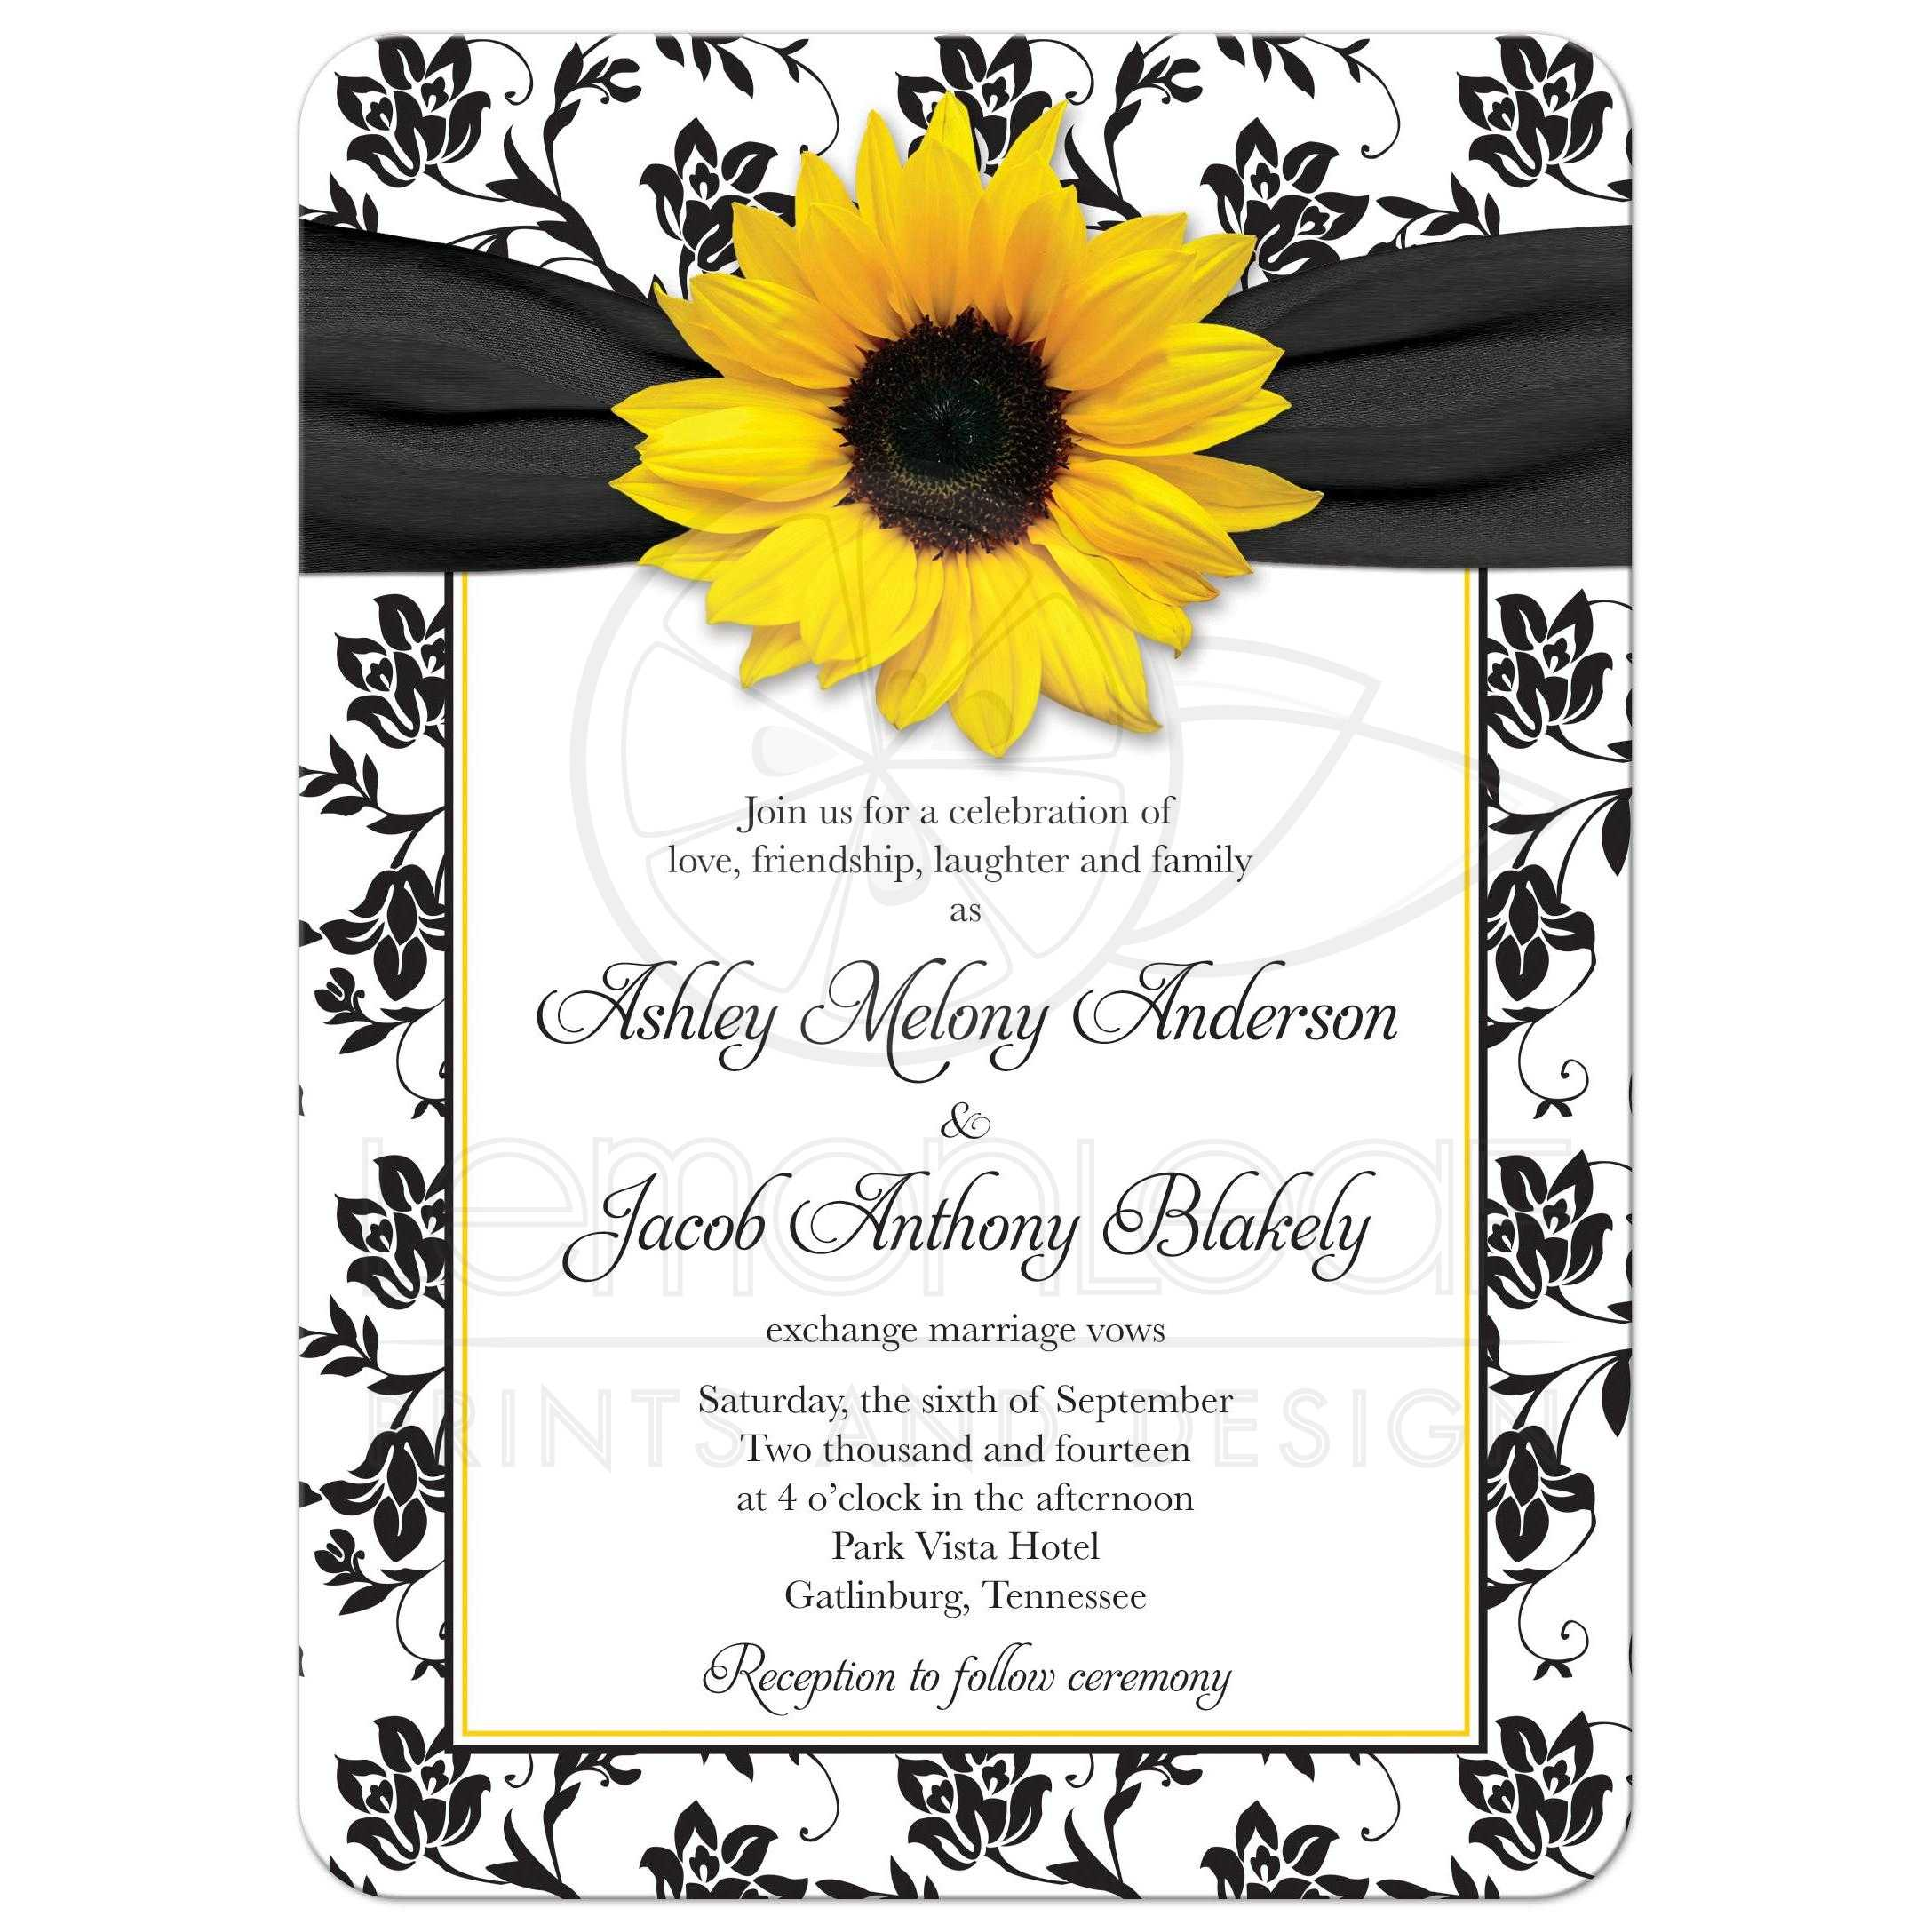 ... Yellow Sunflower, Black And White Damask Floral And Ribbon Wedding  Invitation Front ...